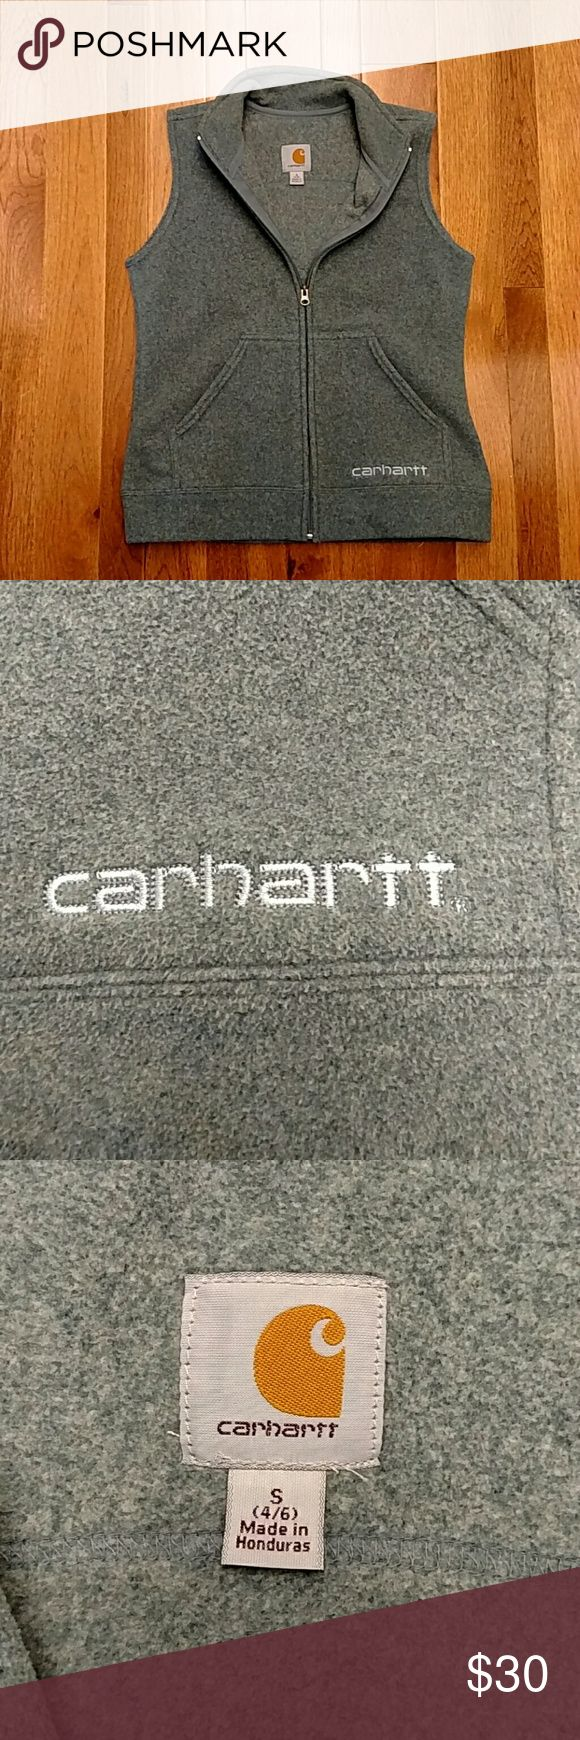 Carhartt Fleece Vest Comfy fleece vest with pockets! Like new condition! Wore a couple times and lived the extra layer of warmth without the restrictions of sleeves. I dropped sizes since last winter--need to find this great piece a new home before winter! Smoke and pet free home. Carhartt Jackets & Coats Vests